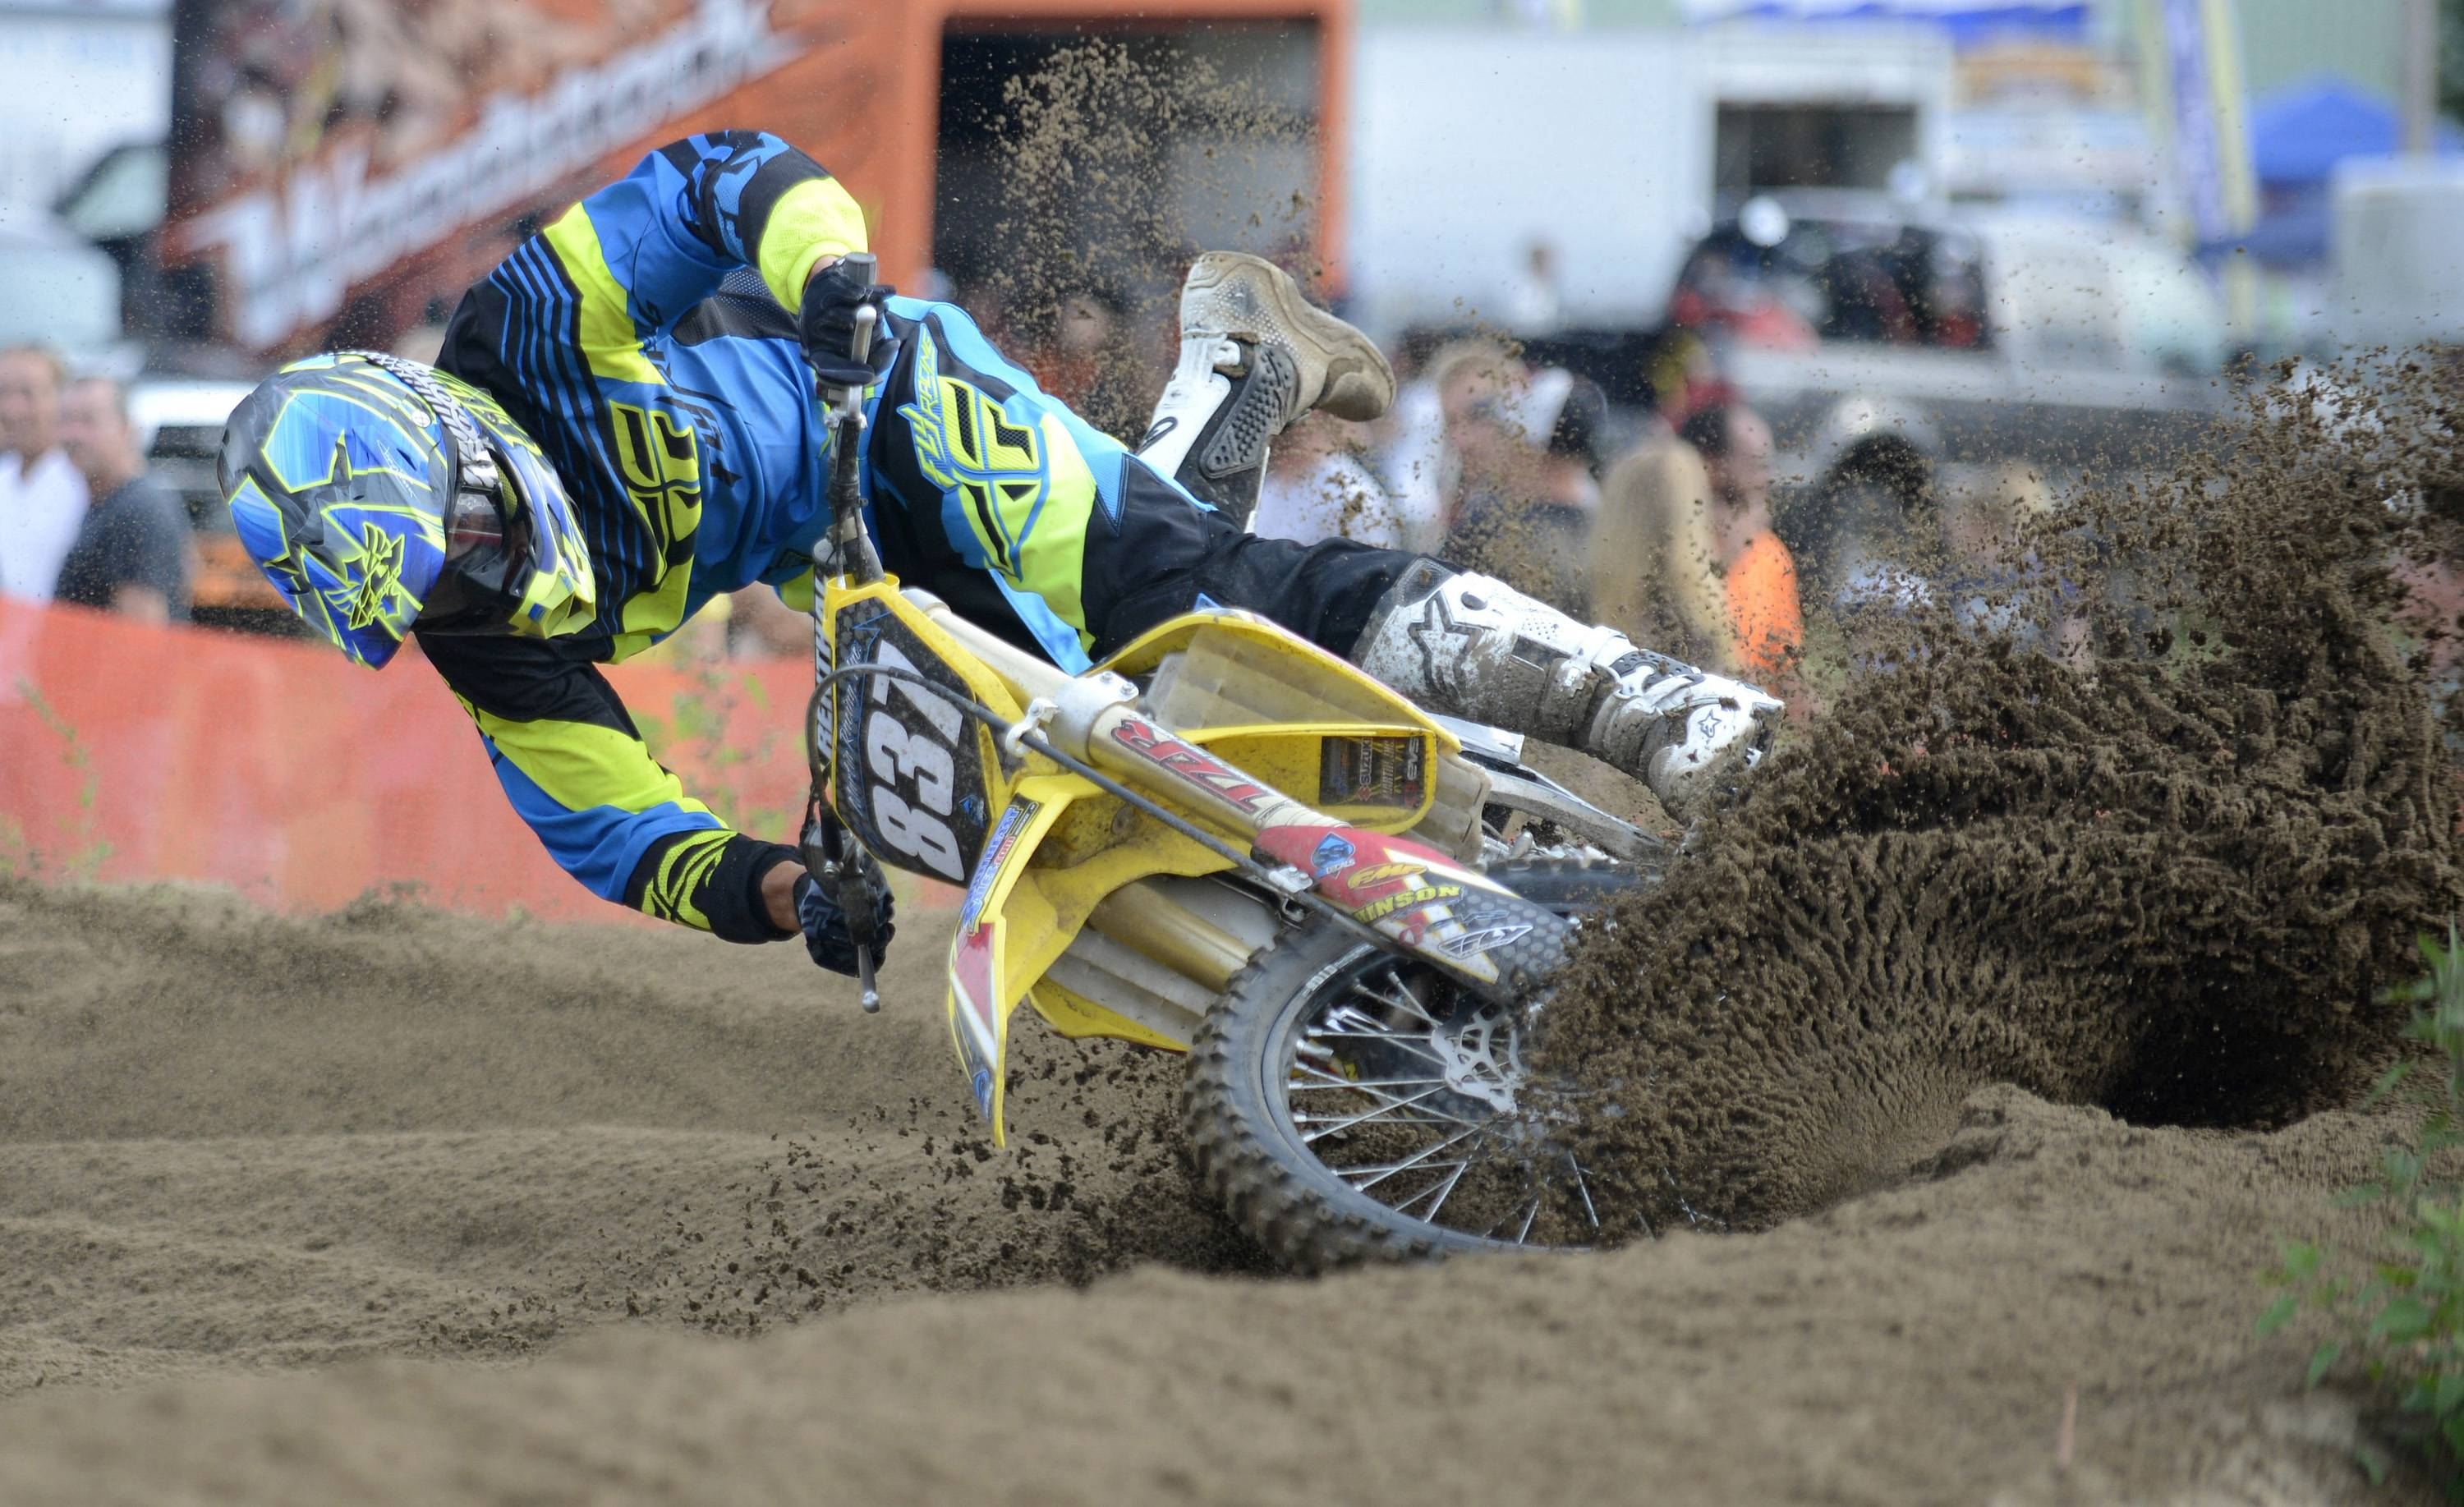 Ross Martin, 28, of Burlington, Wis., tips his bike in the deep dirt during the motocross race at last year's McHenry County Fair.